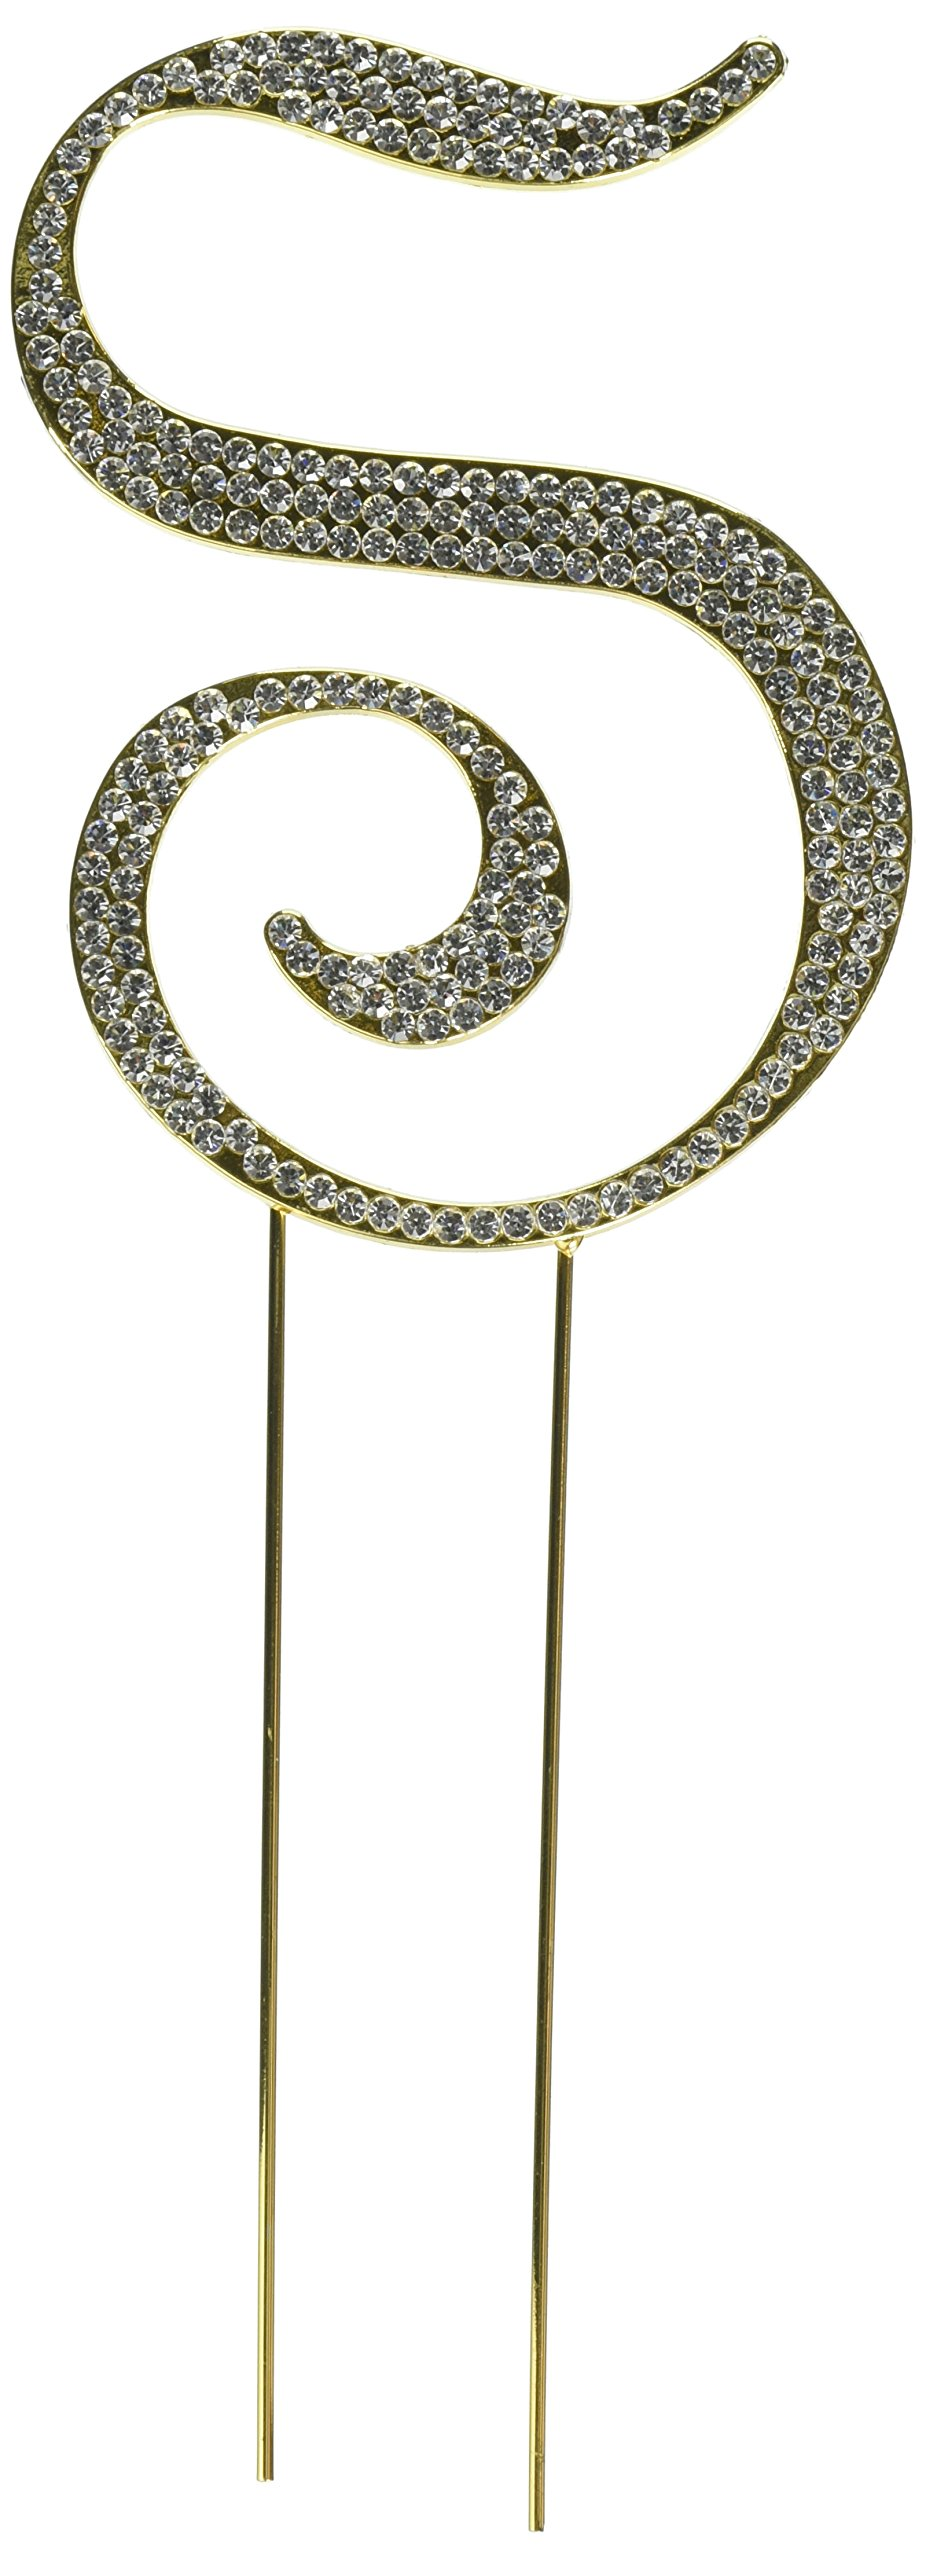 Unik Occasions Sparkling Collection Crystal Rhinestone Monogram Cake Topper - Letter S, Large, Gold